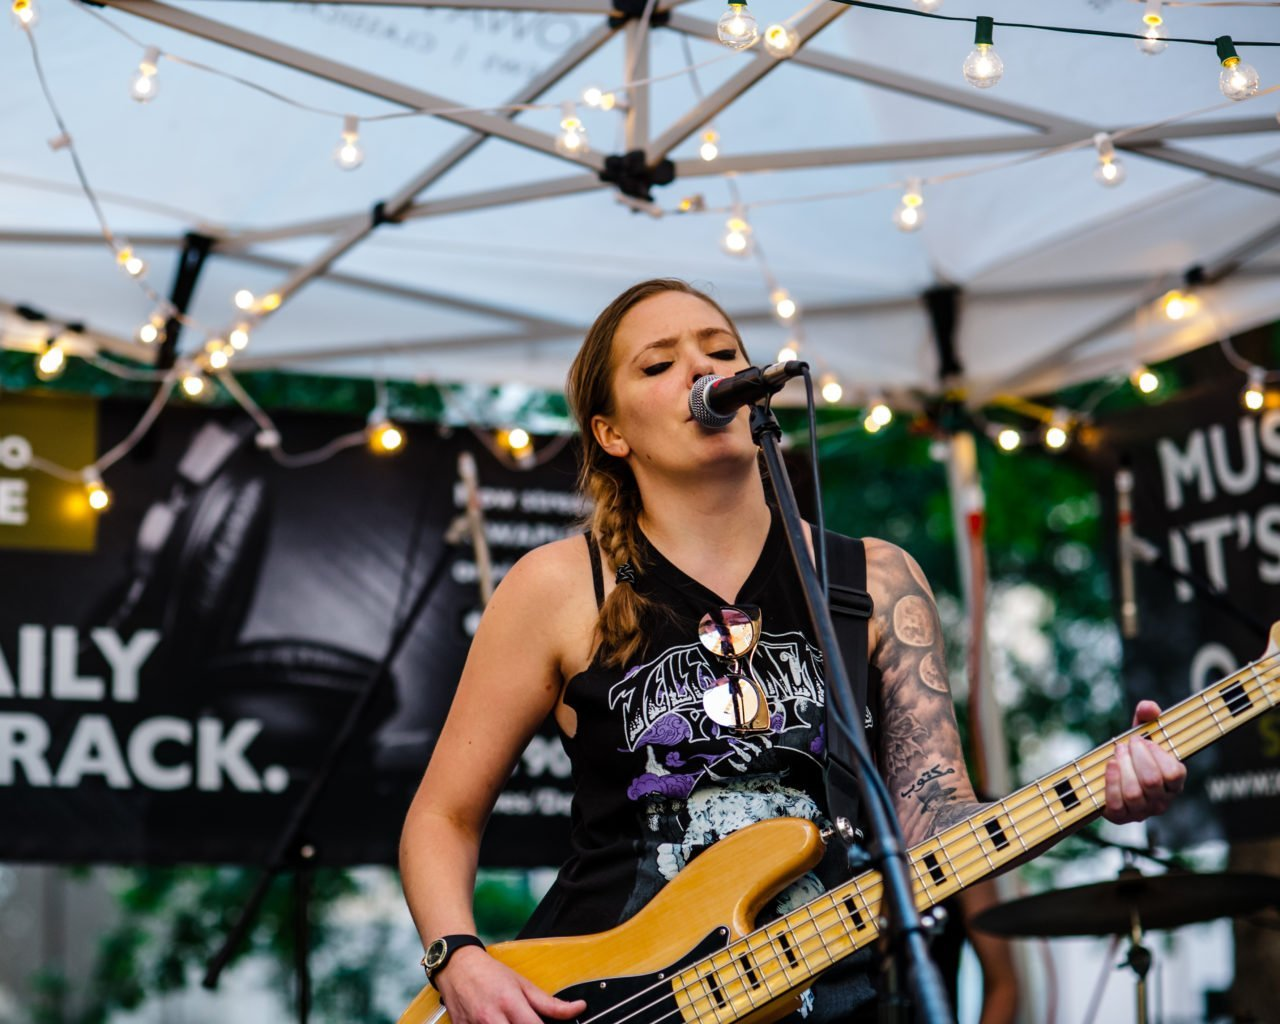 Honeycreeper performing on the Iowa Public Radio stage at 80/35 Music Festival 2018 in Des Moines, Iowa